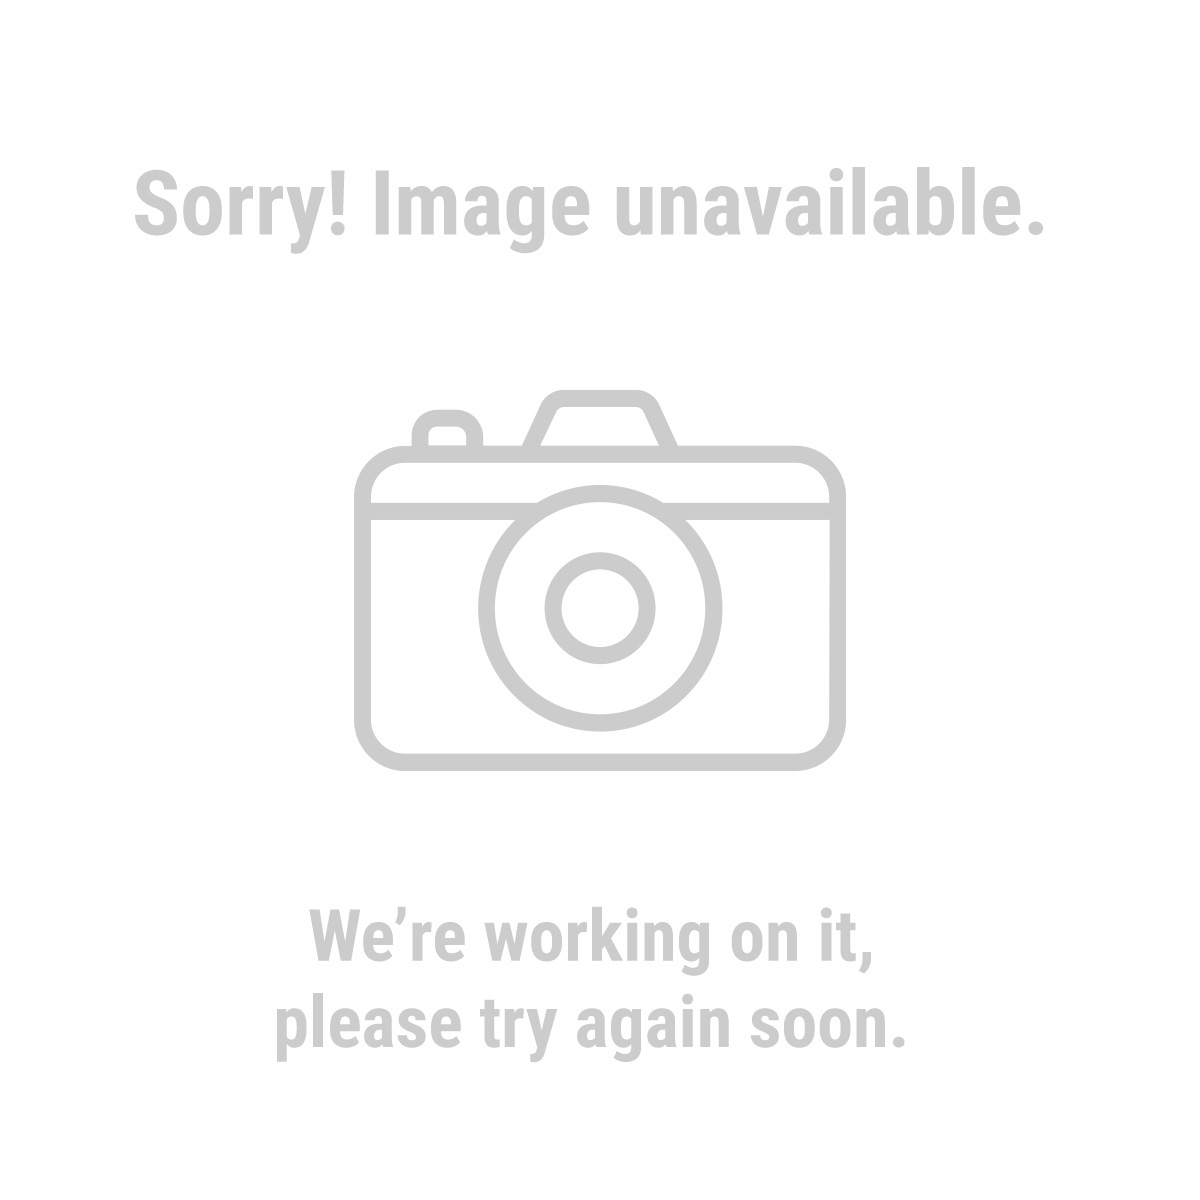 "Portland 69293 1-1/2"" Capacity 14 Amp Chipper Shredder"